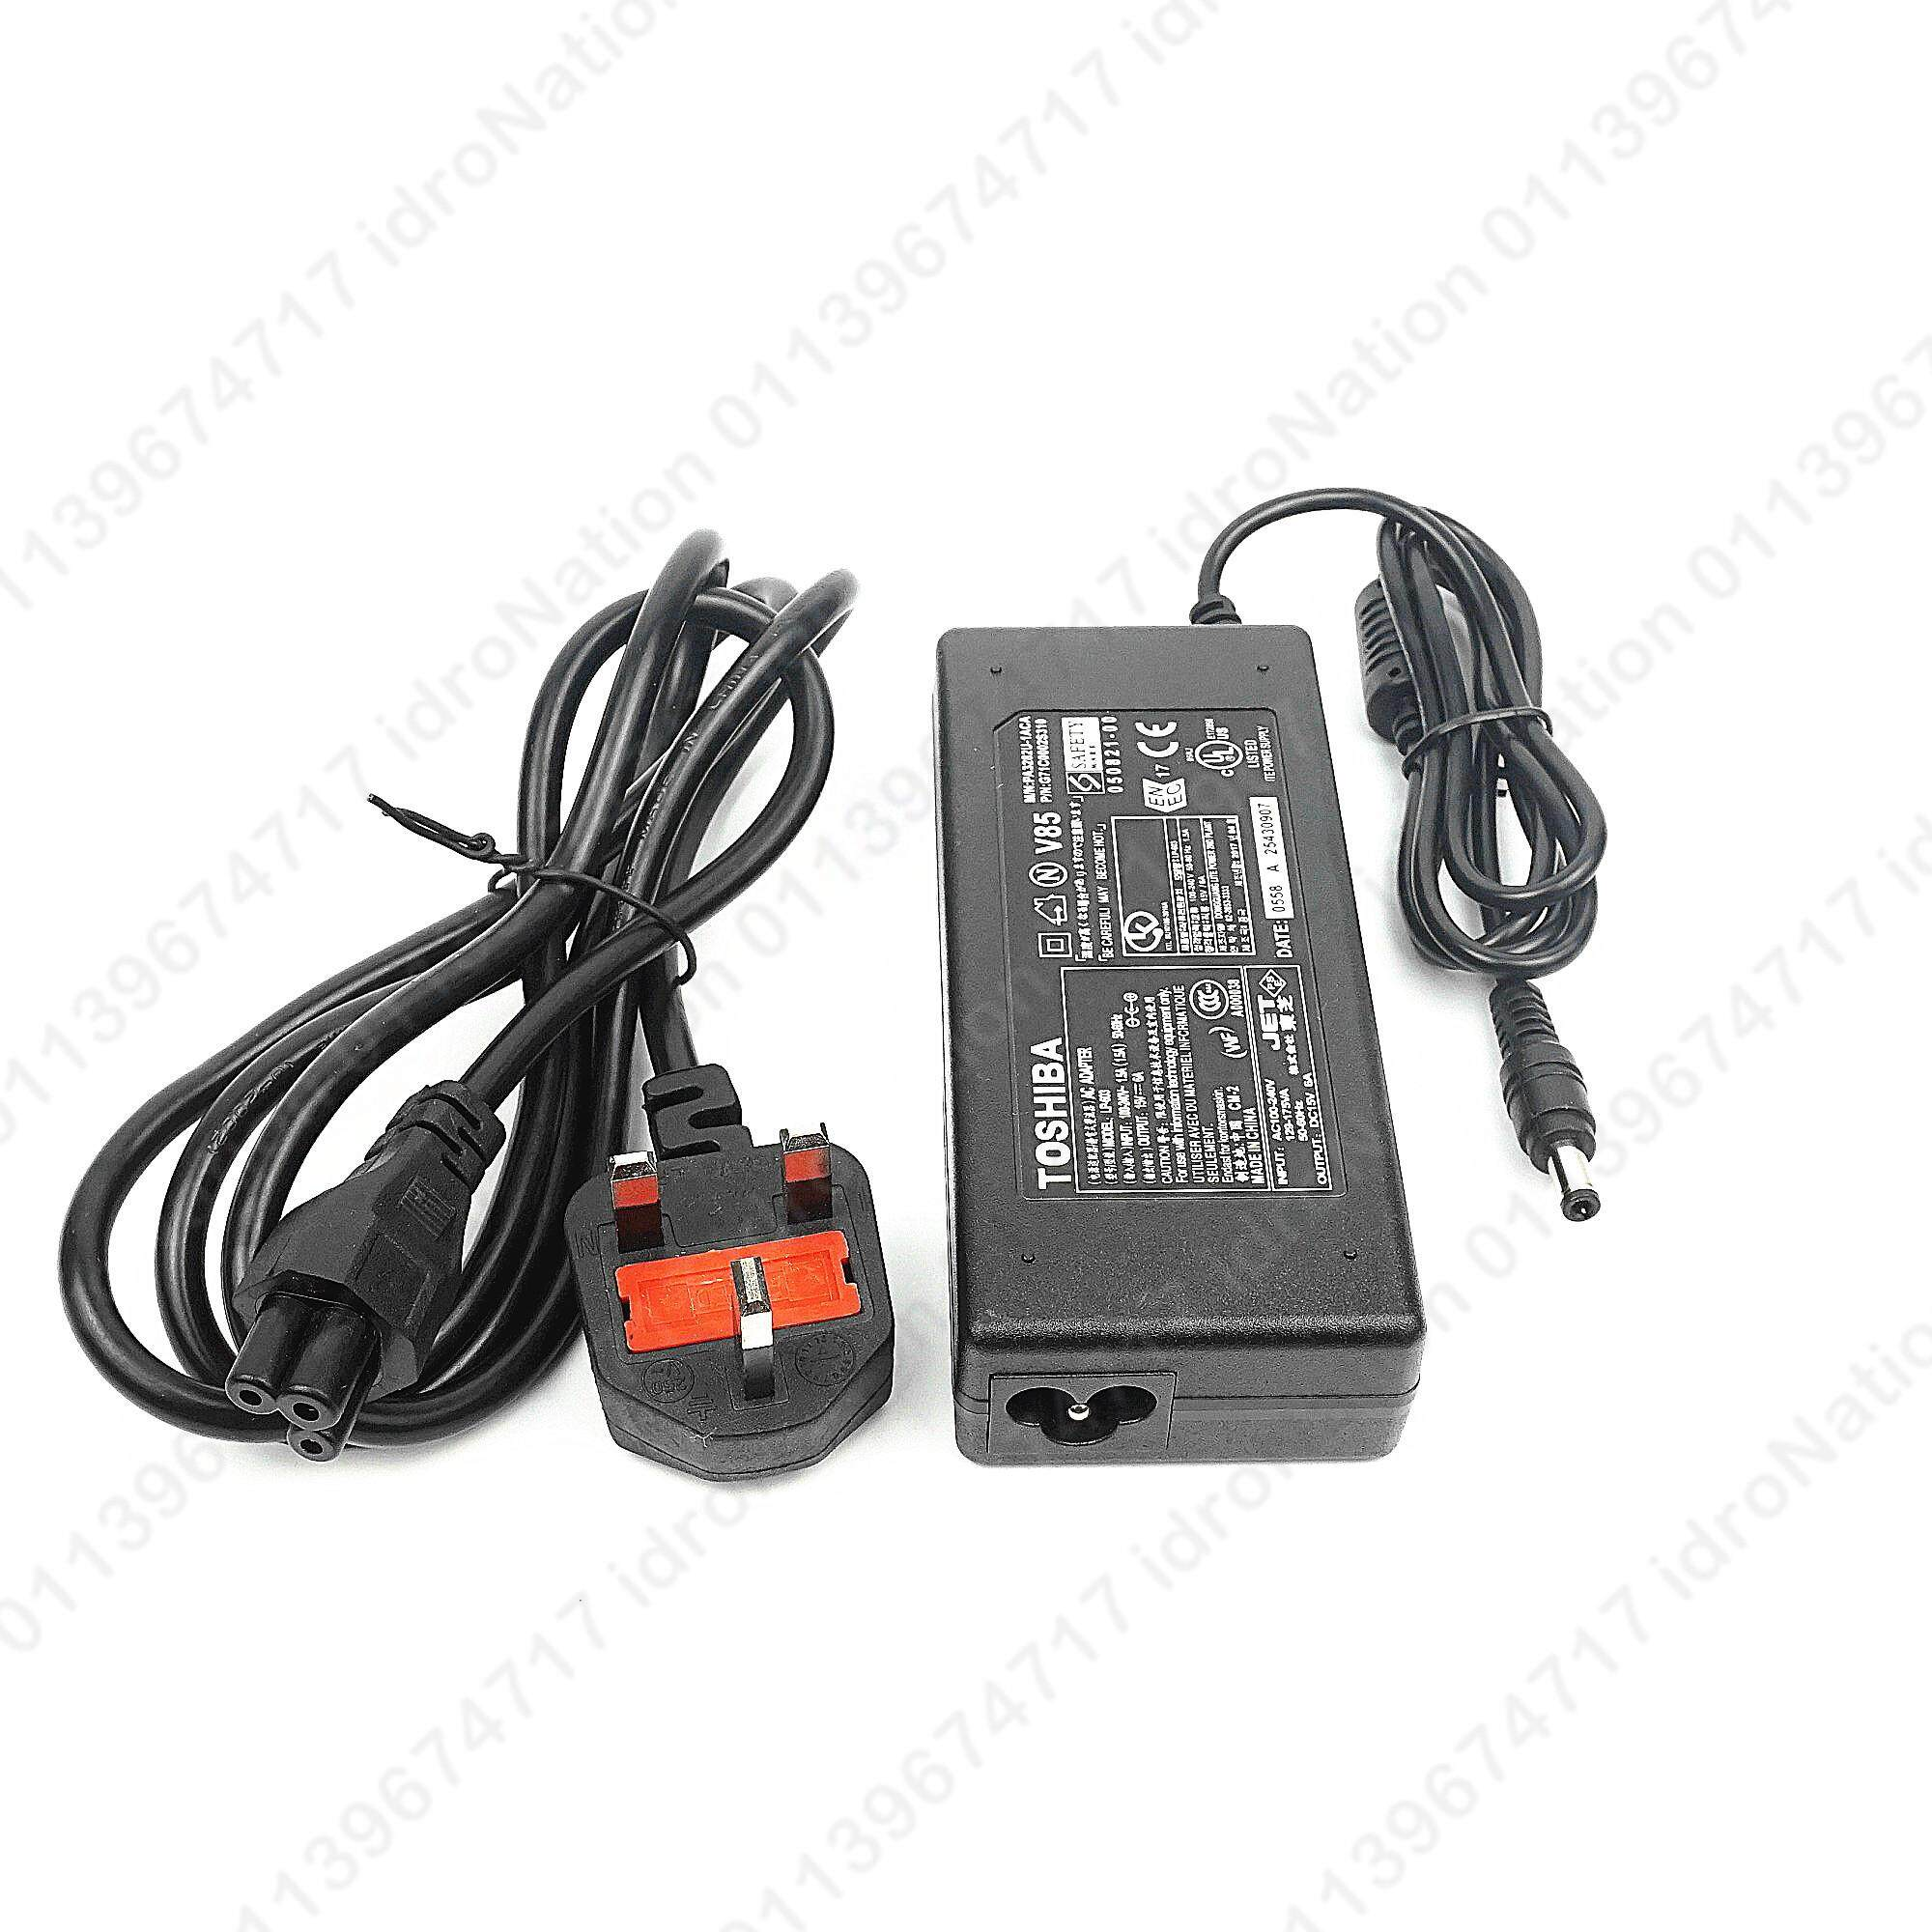 90W 15V 6A AD DC Power Supply Adapter Battery Balancer Converter RC Charger  For iMAX B6 ops UK Power Cord 60W 12V 5A